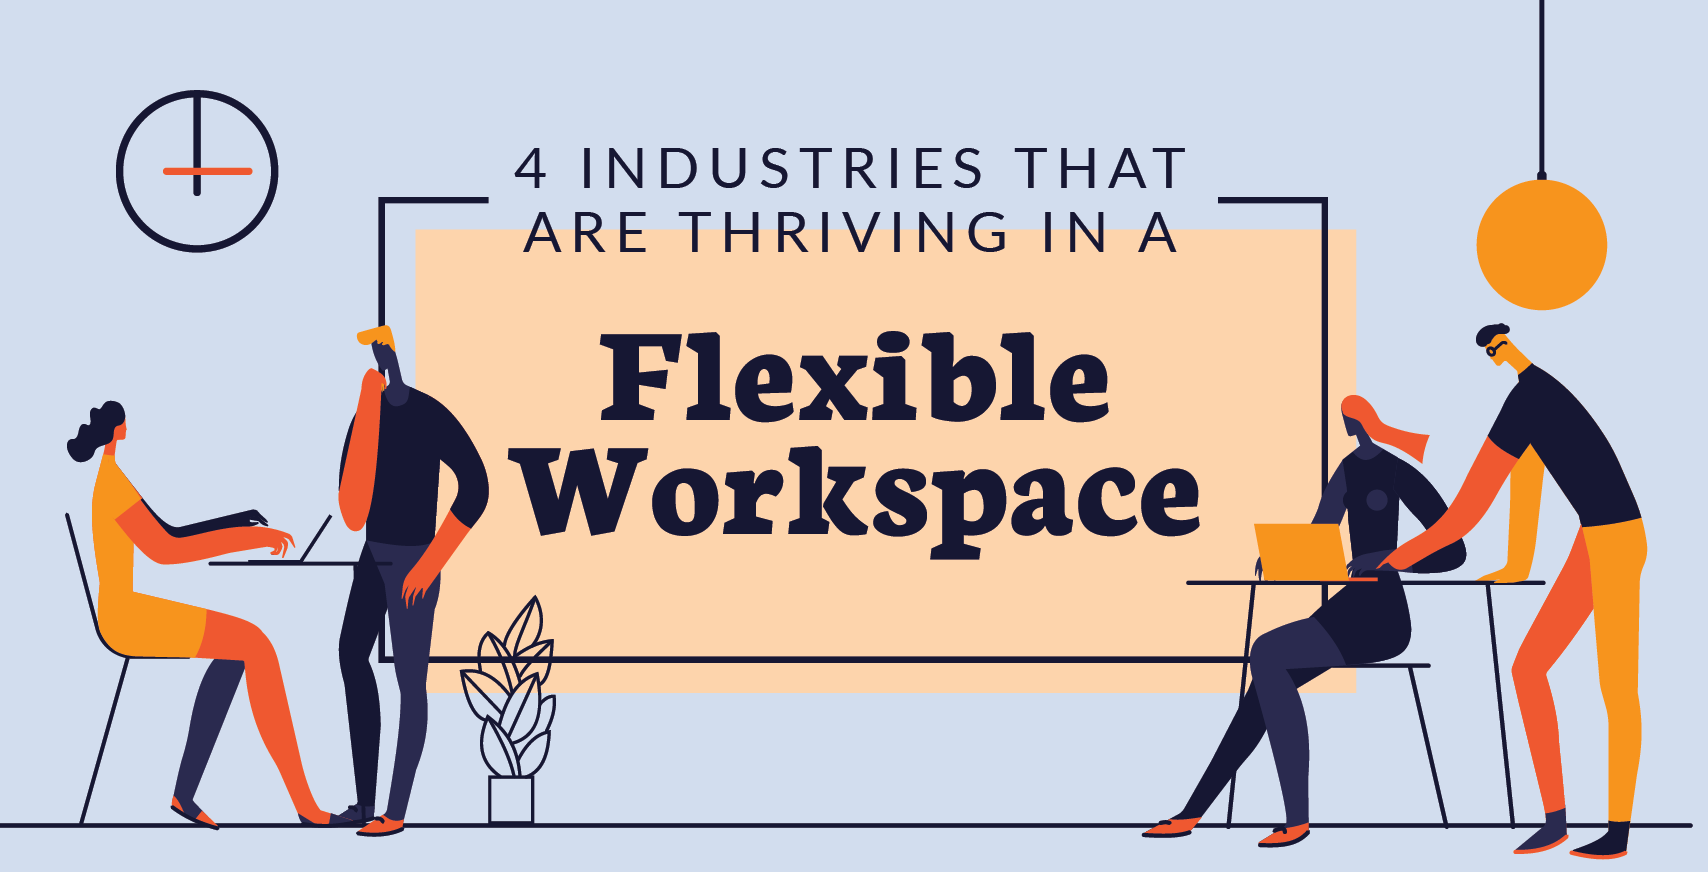 4 Industries That Are Thriving in a Flexible Workplace